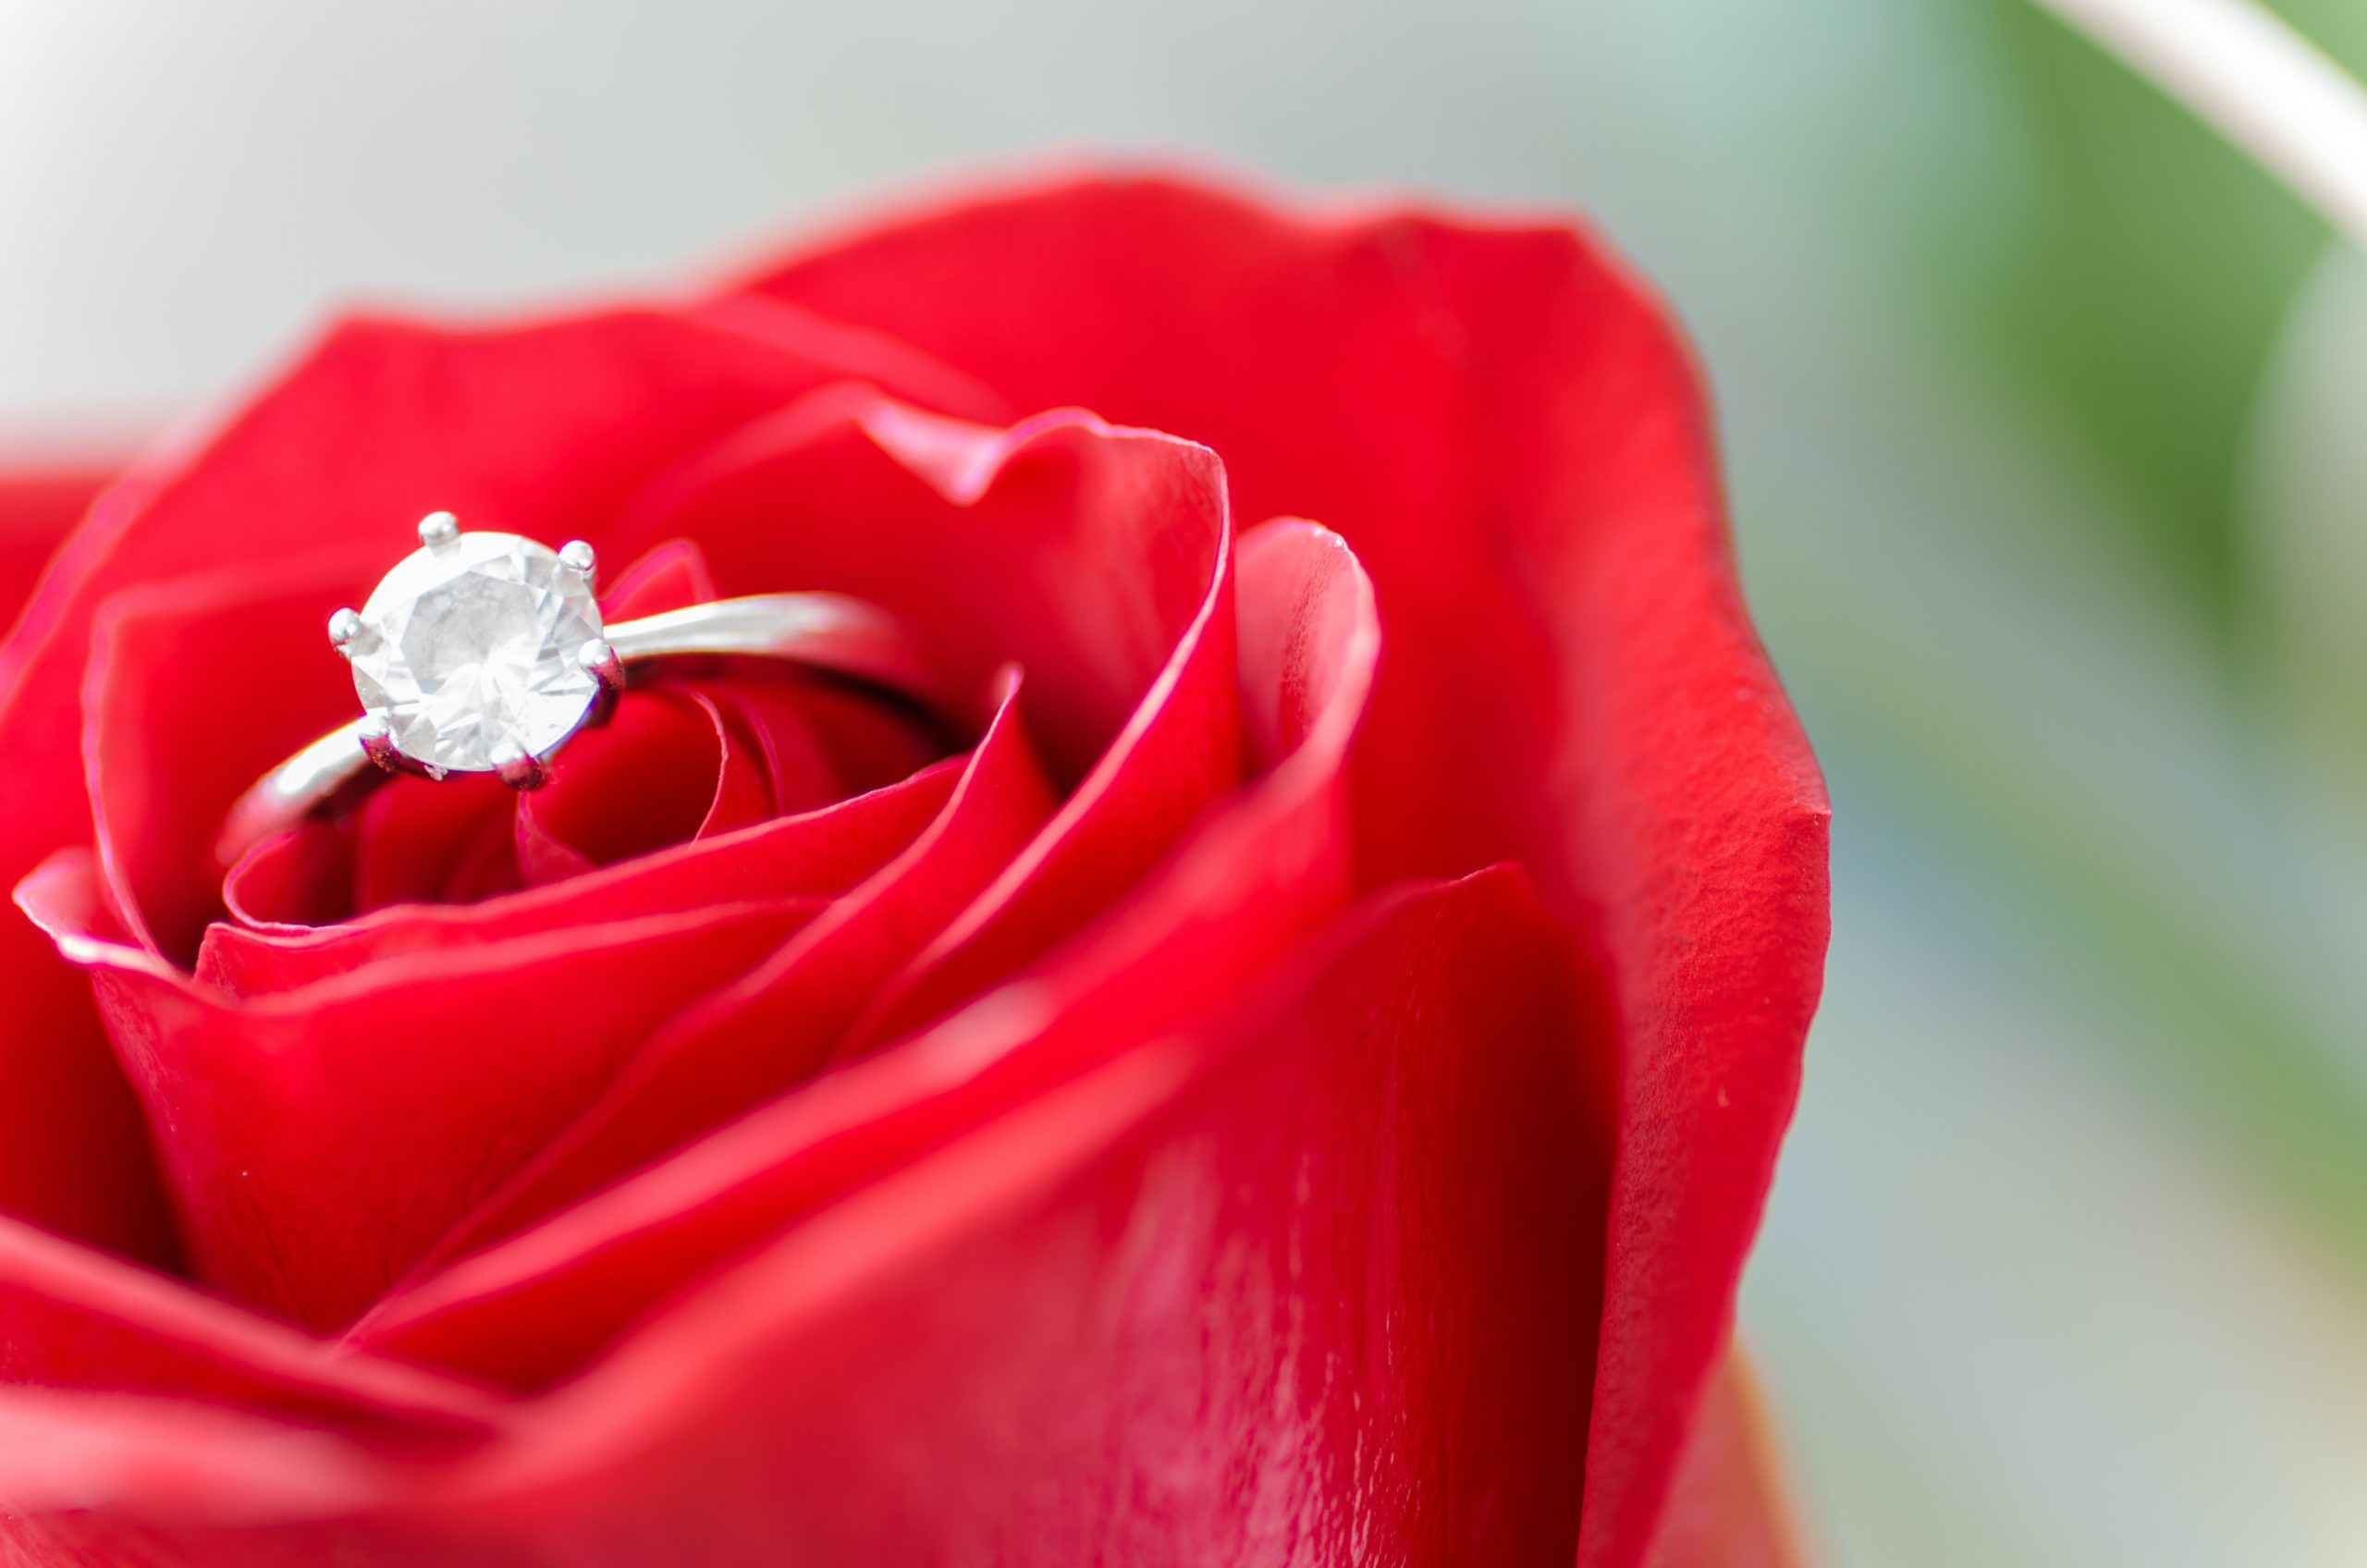 What Should I Look For When Buying An Engagement Ring